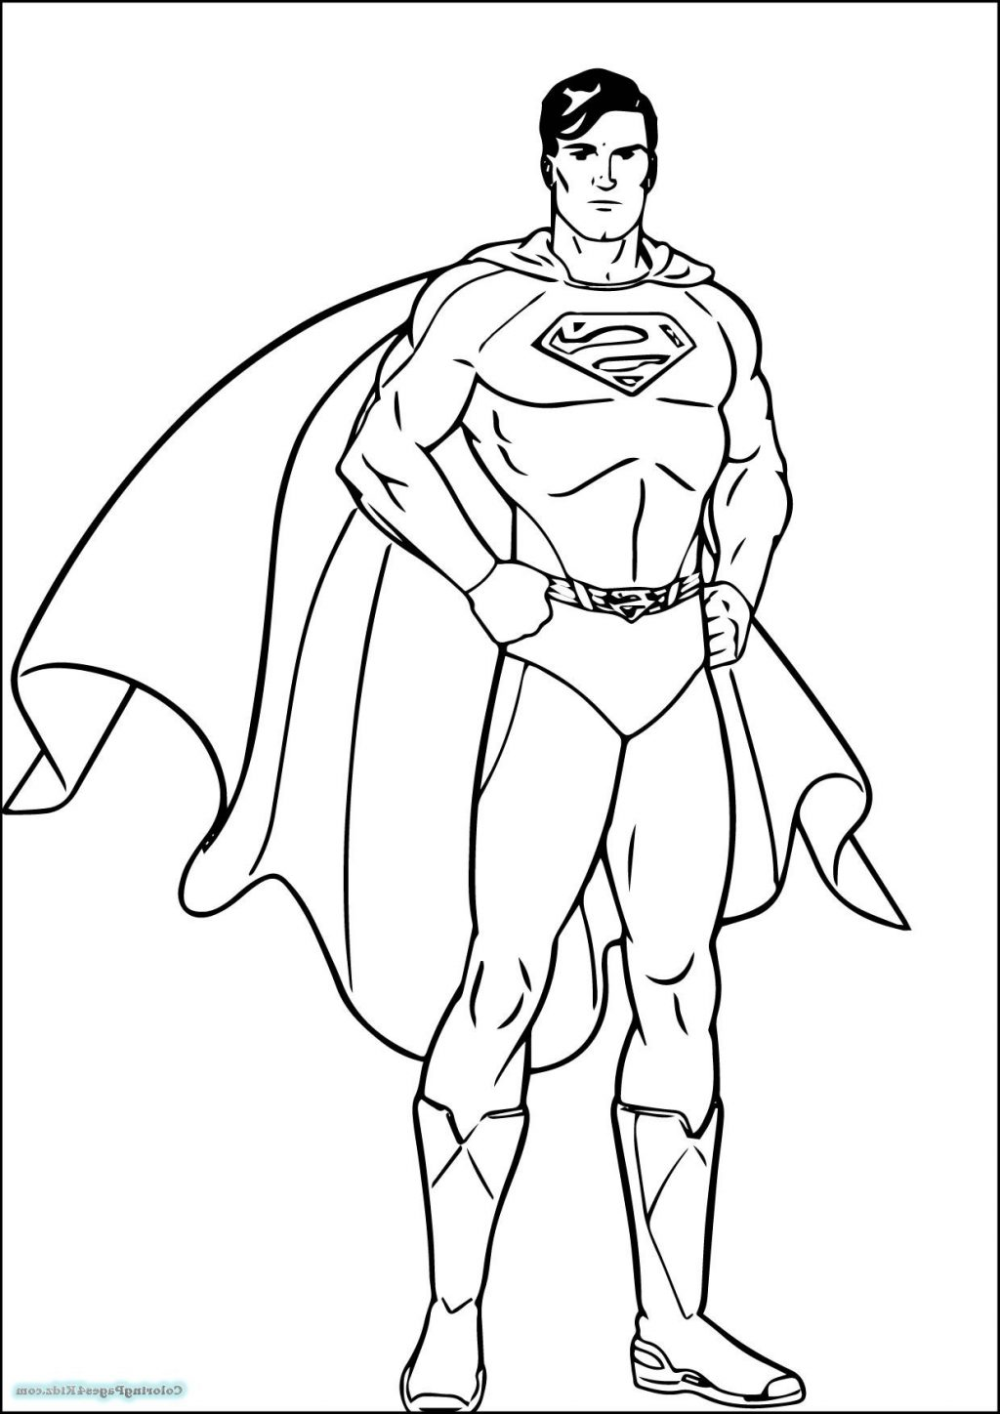 Coloring Book Batman Vs Superman Colouring Book Cactus Coloring Kimmi The Clown Shopkins Superhero Coloring Pages Superman Coloring Pages Superhero Coloring